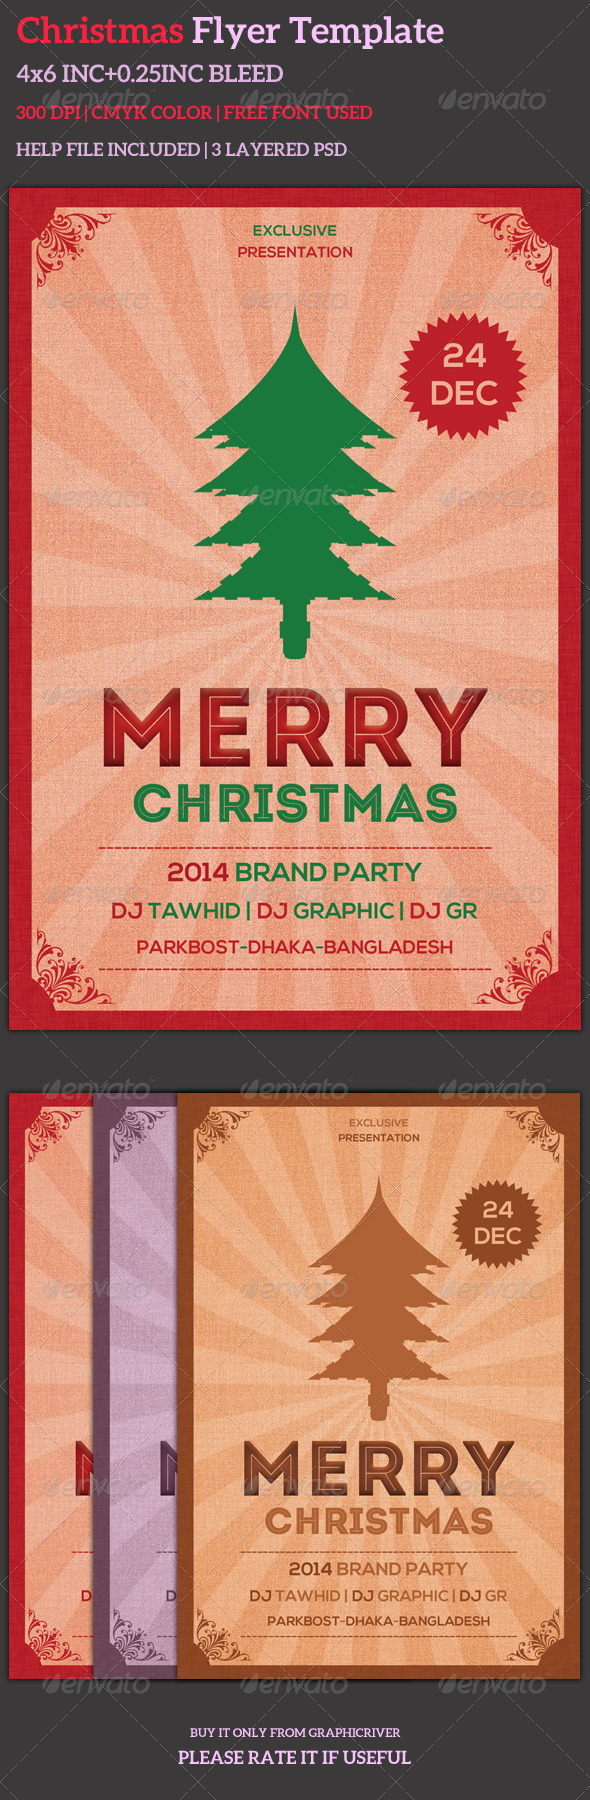 GraphicRiver Christmas Flyer Template 6190652